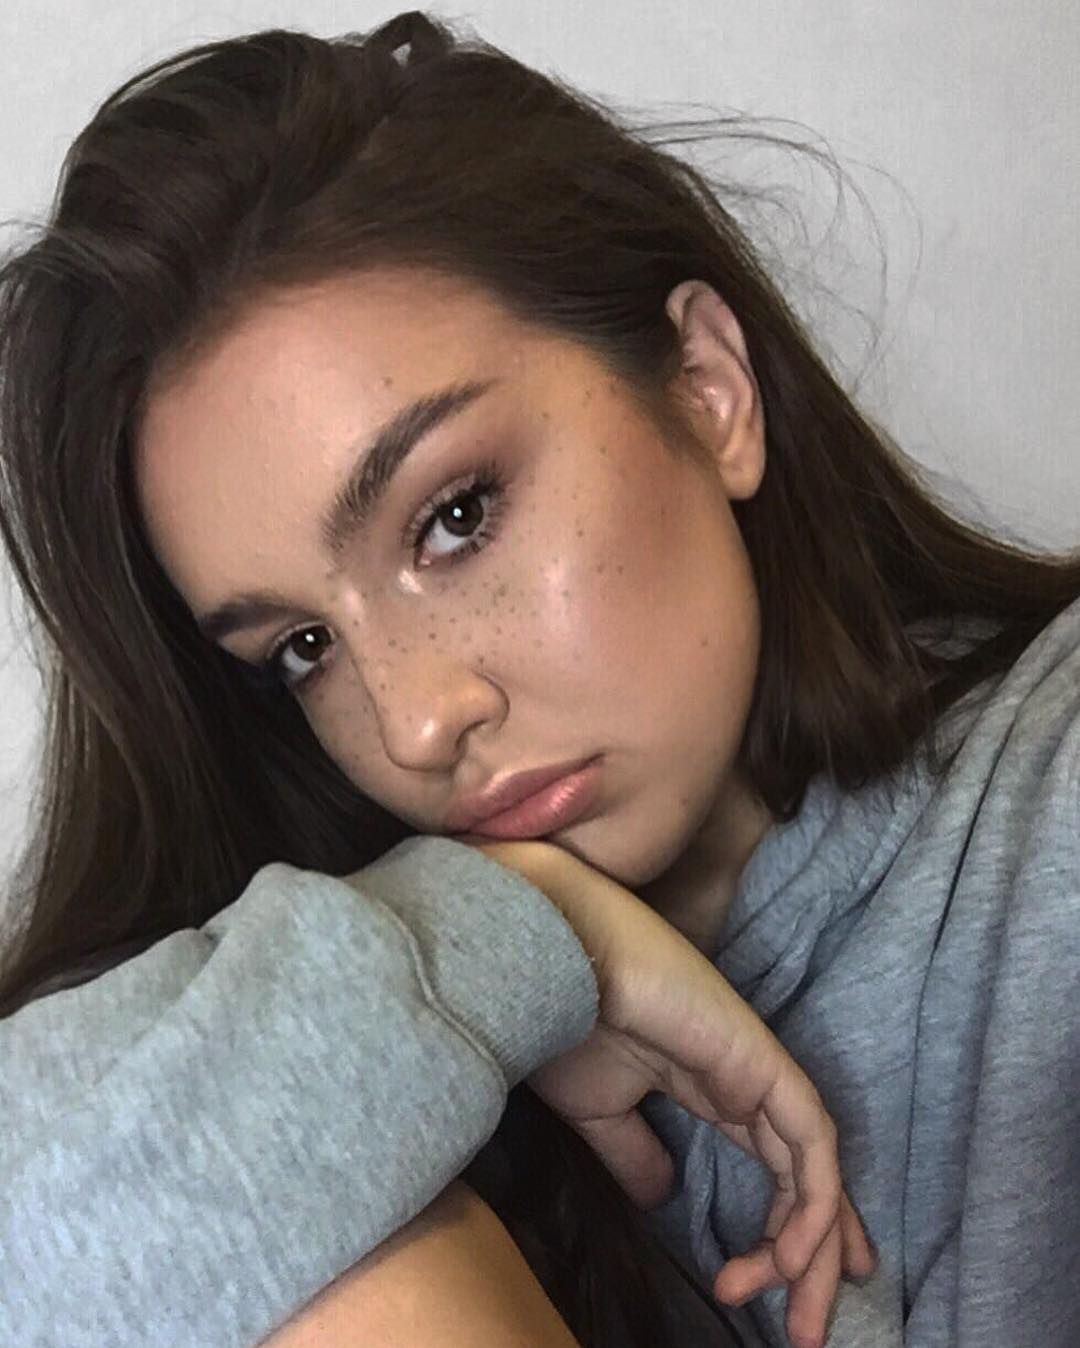 Nose piercing for big nose  ABH Cream Contour Kit in Light for faux freckles u ABH Starlight